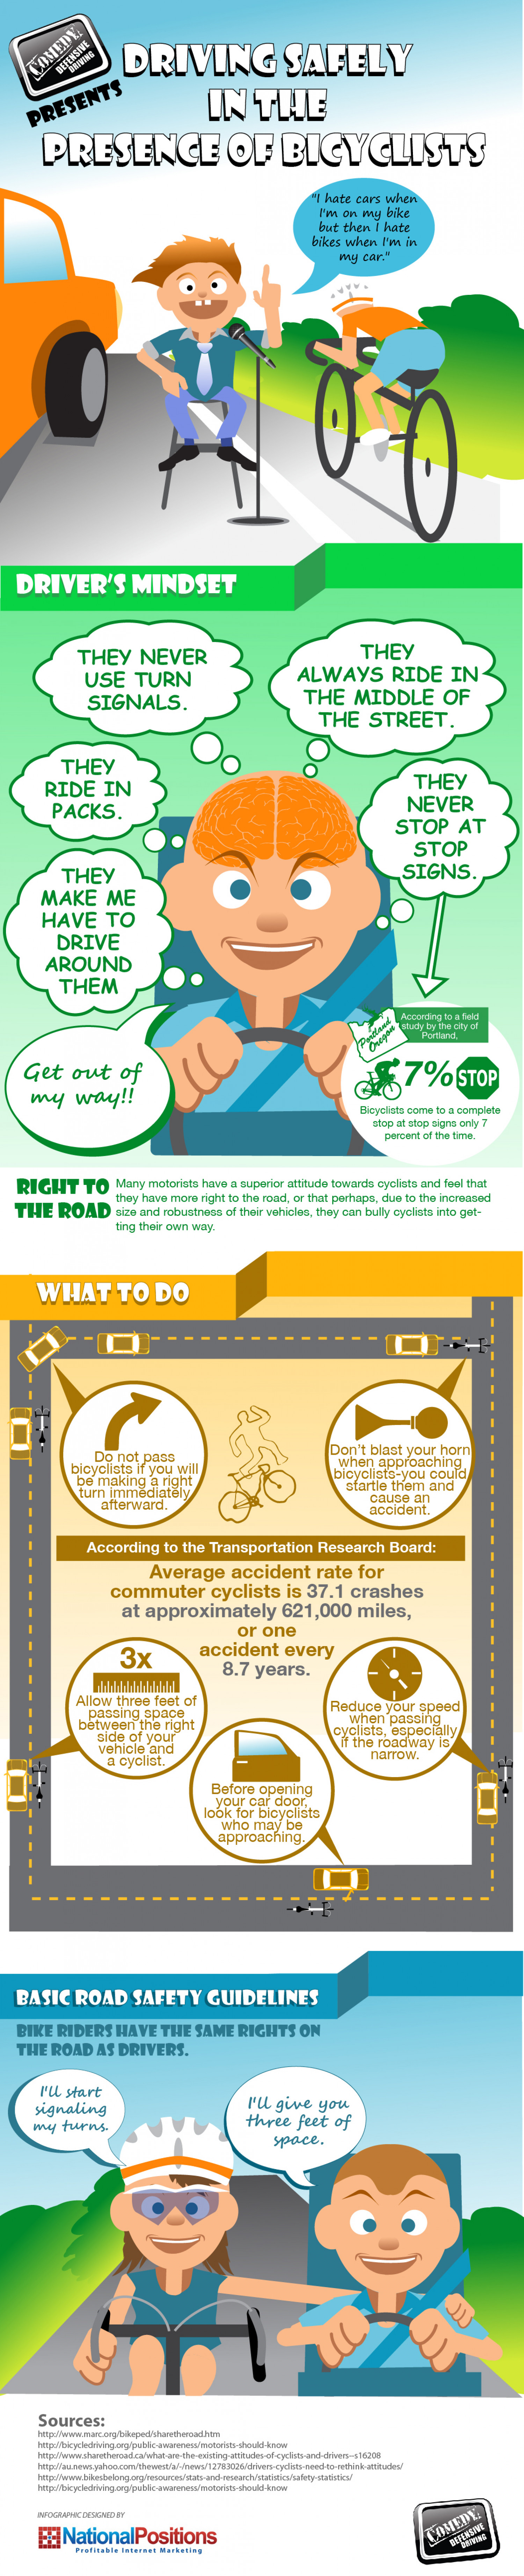 Driving Safely in the Presence of Bicyclists Infographic